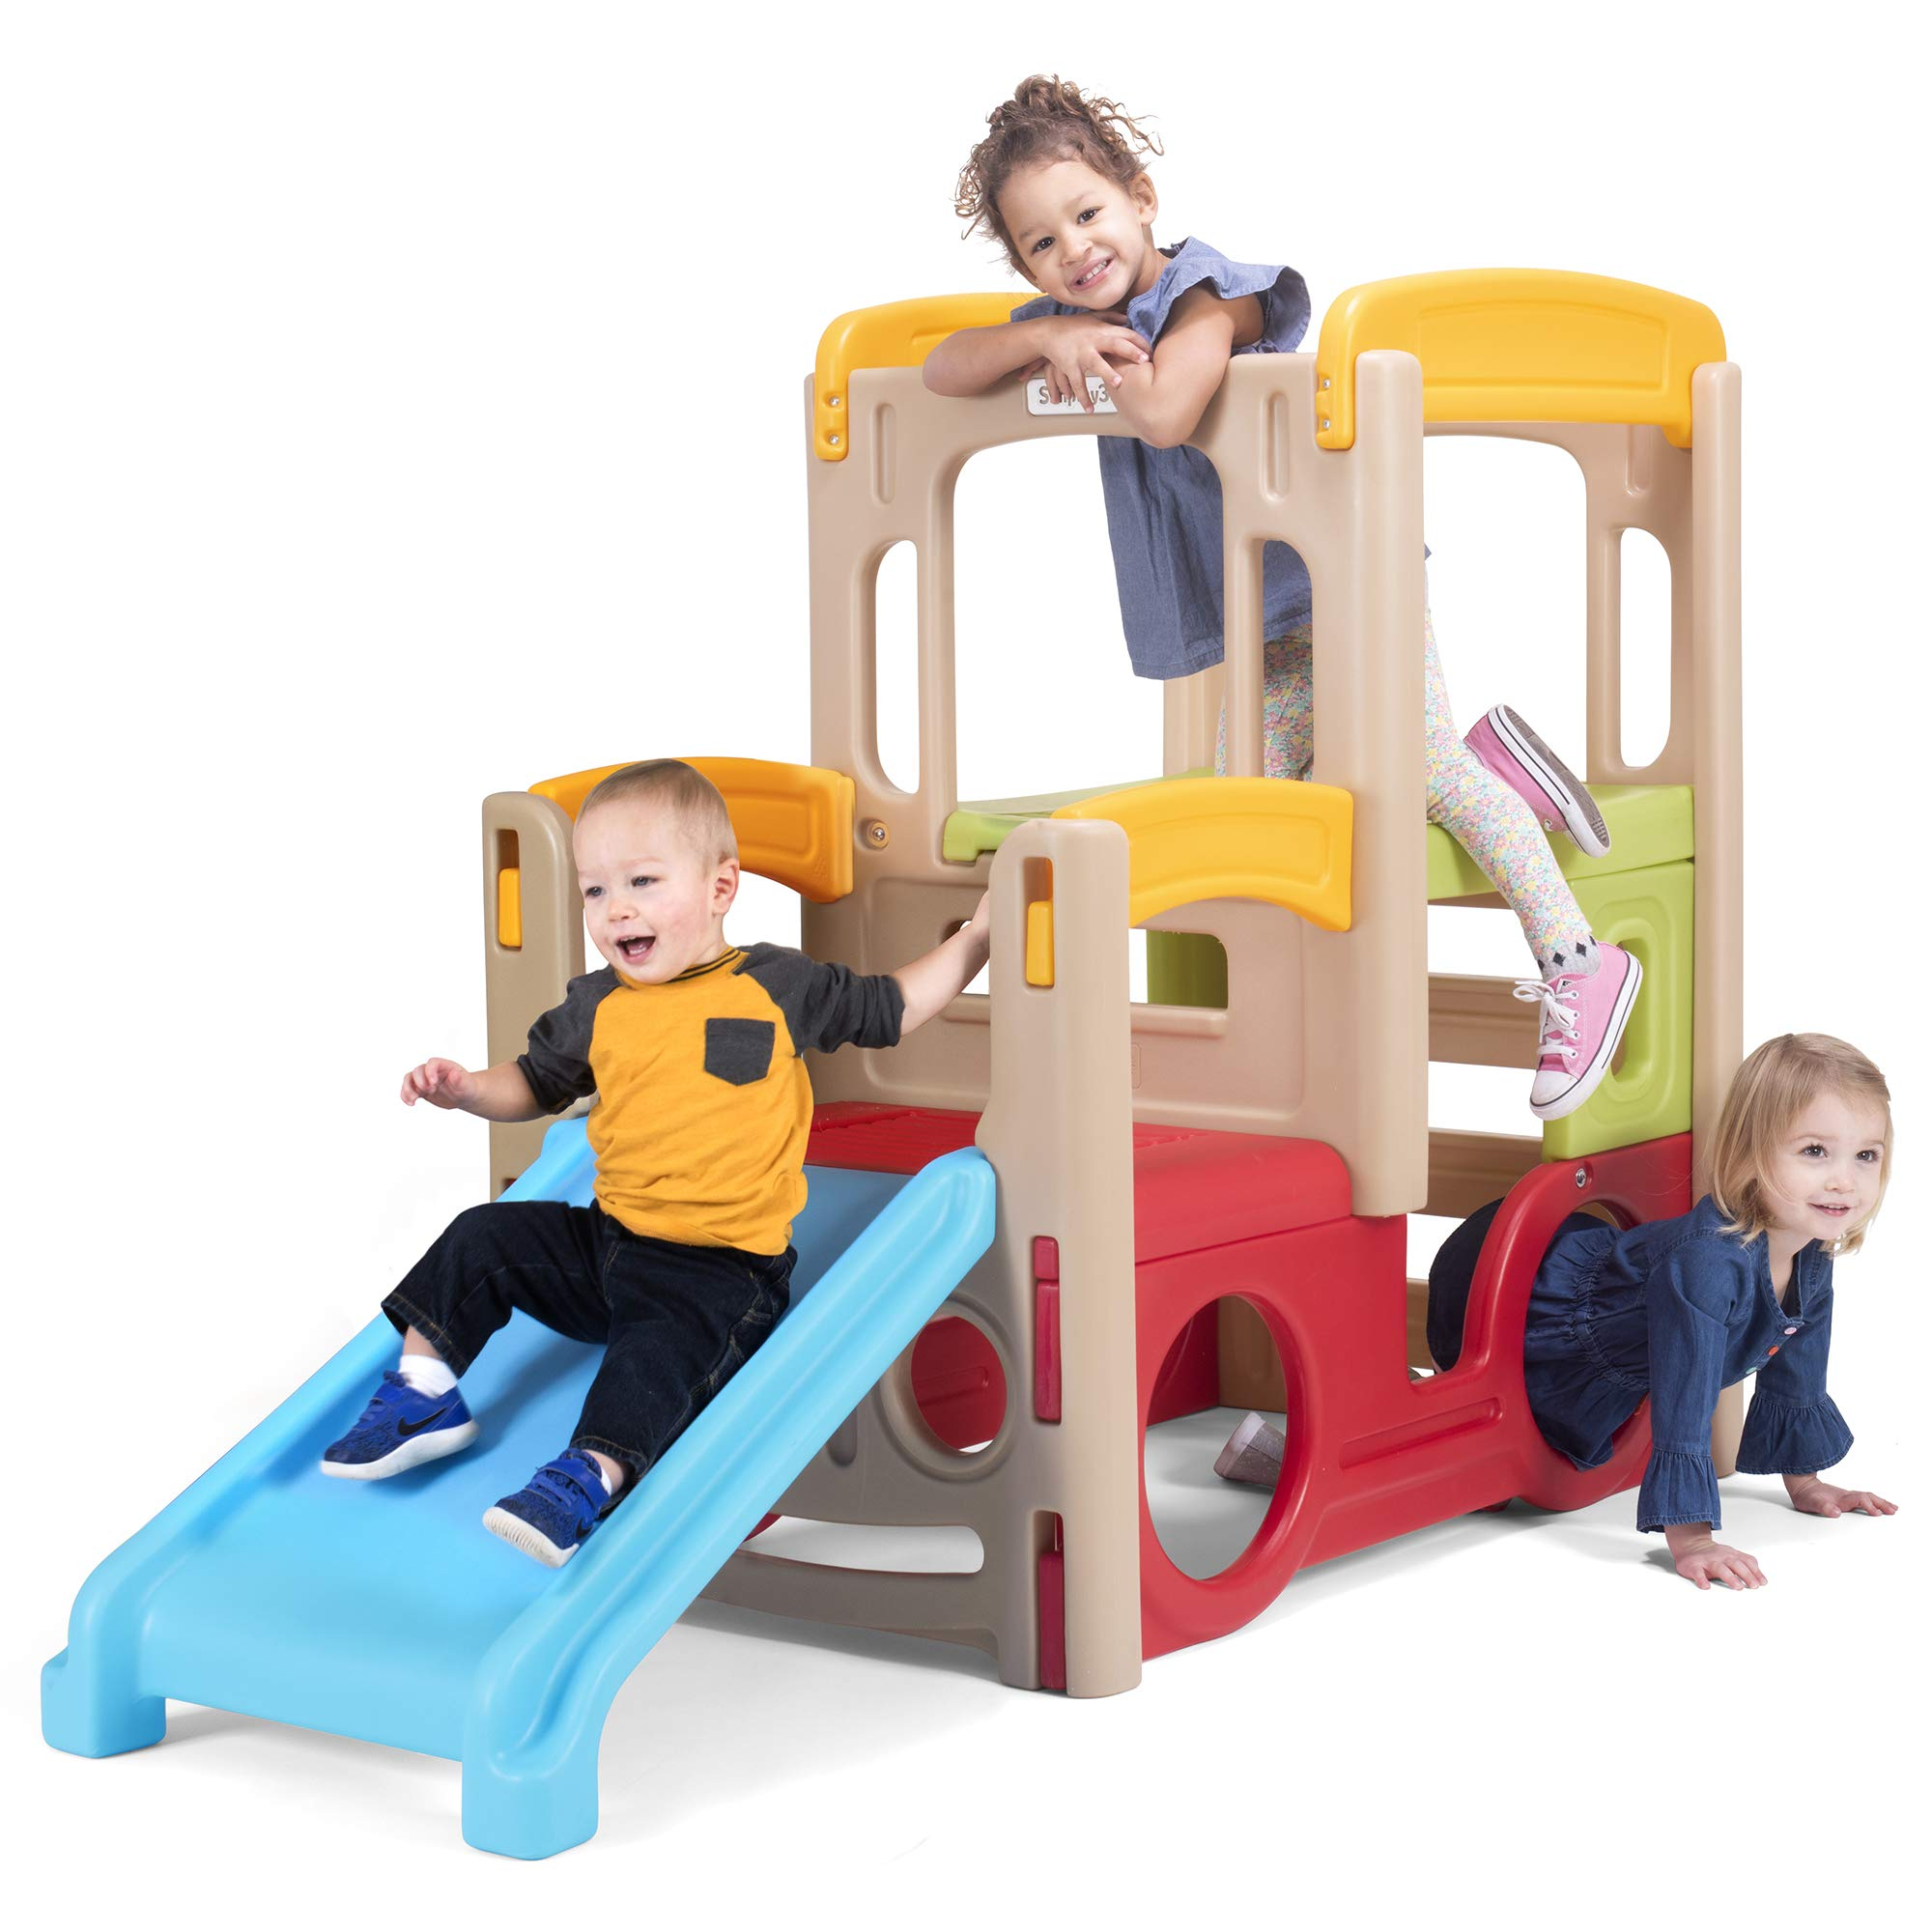 Simplay3 Young Explorers Adventure Climber - Indoor Outdoor Crawl Climb Drive Slide Playset for Children